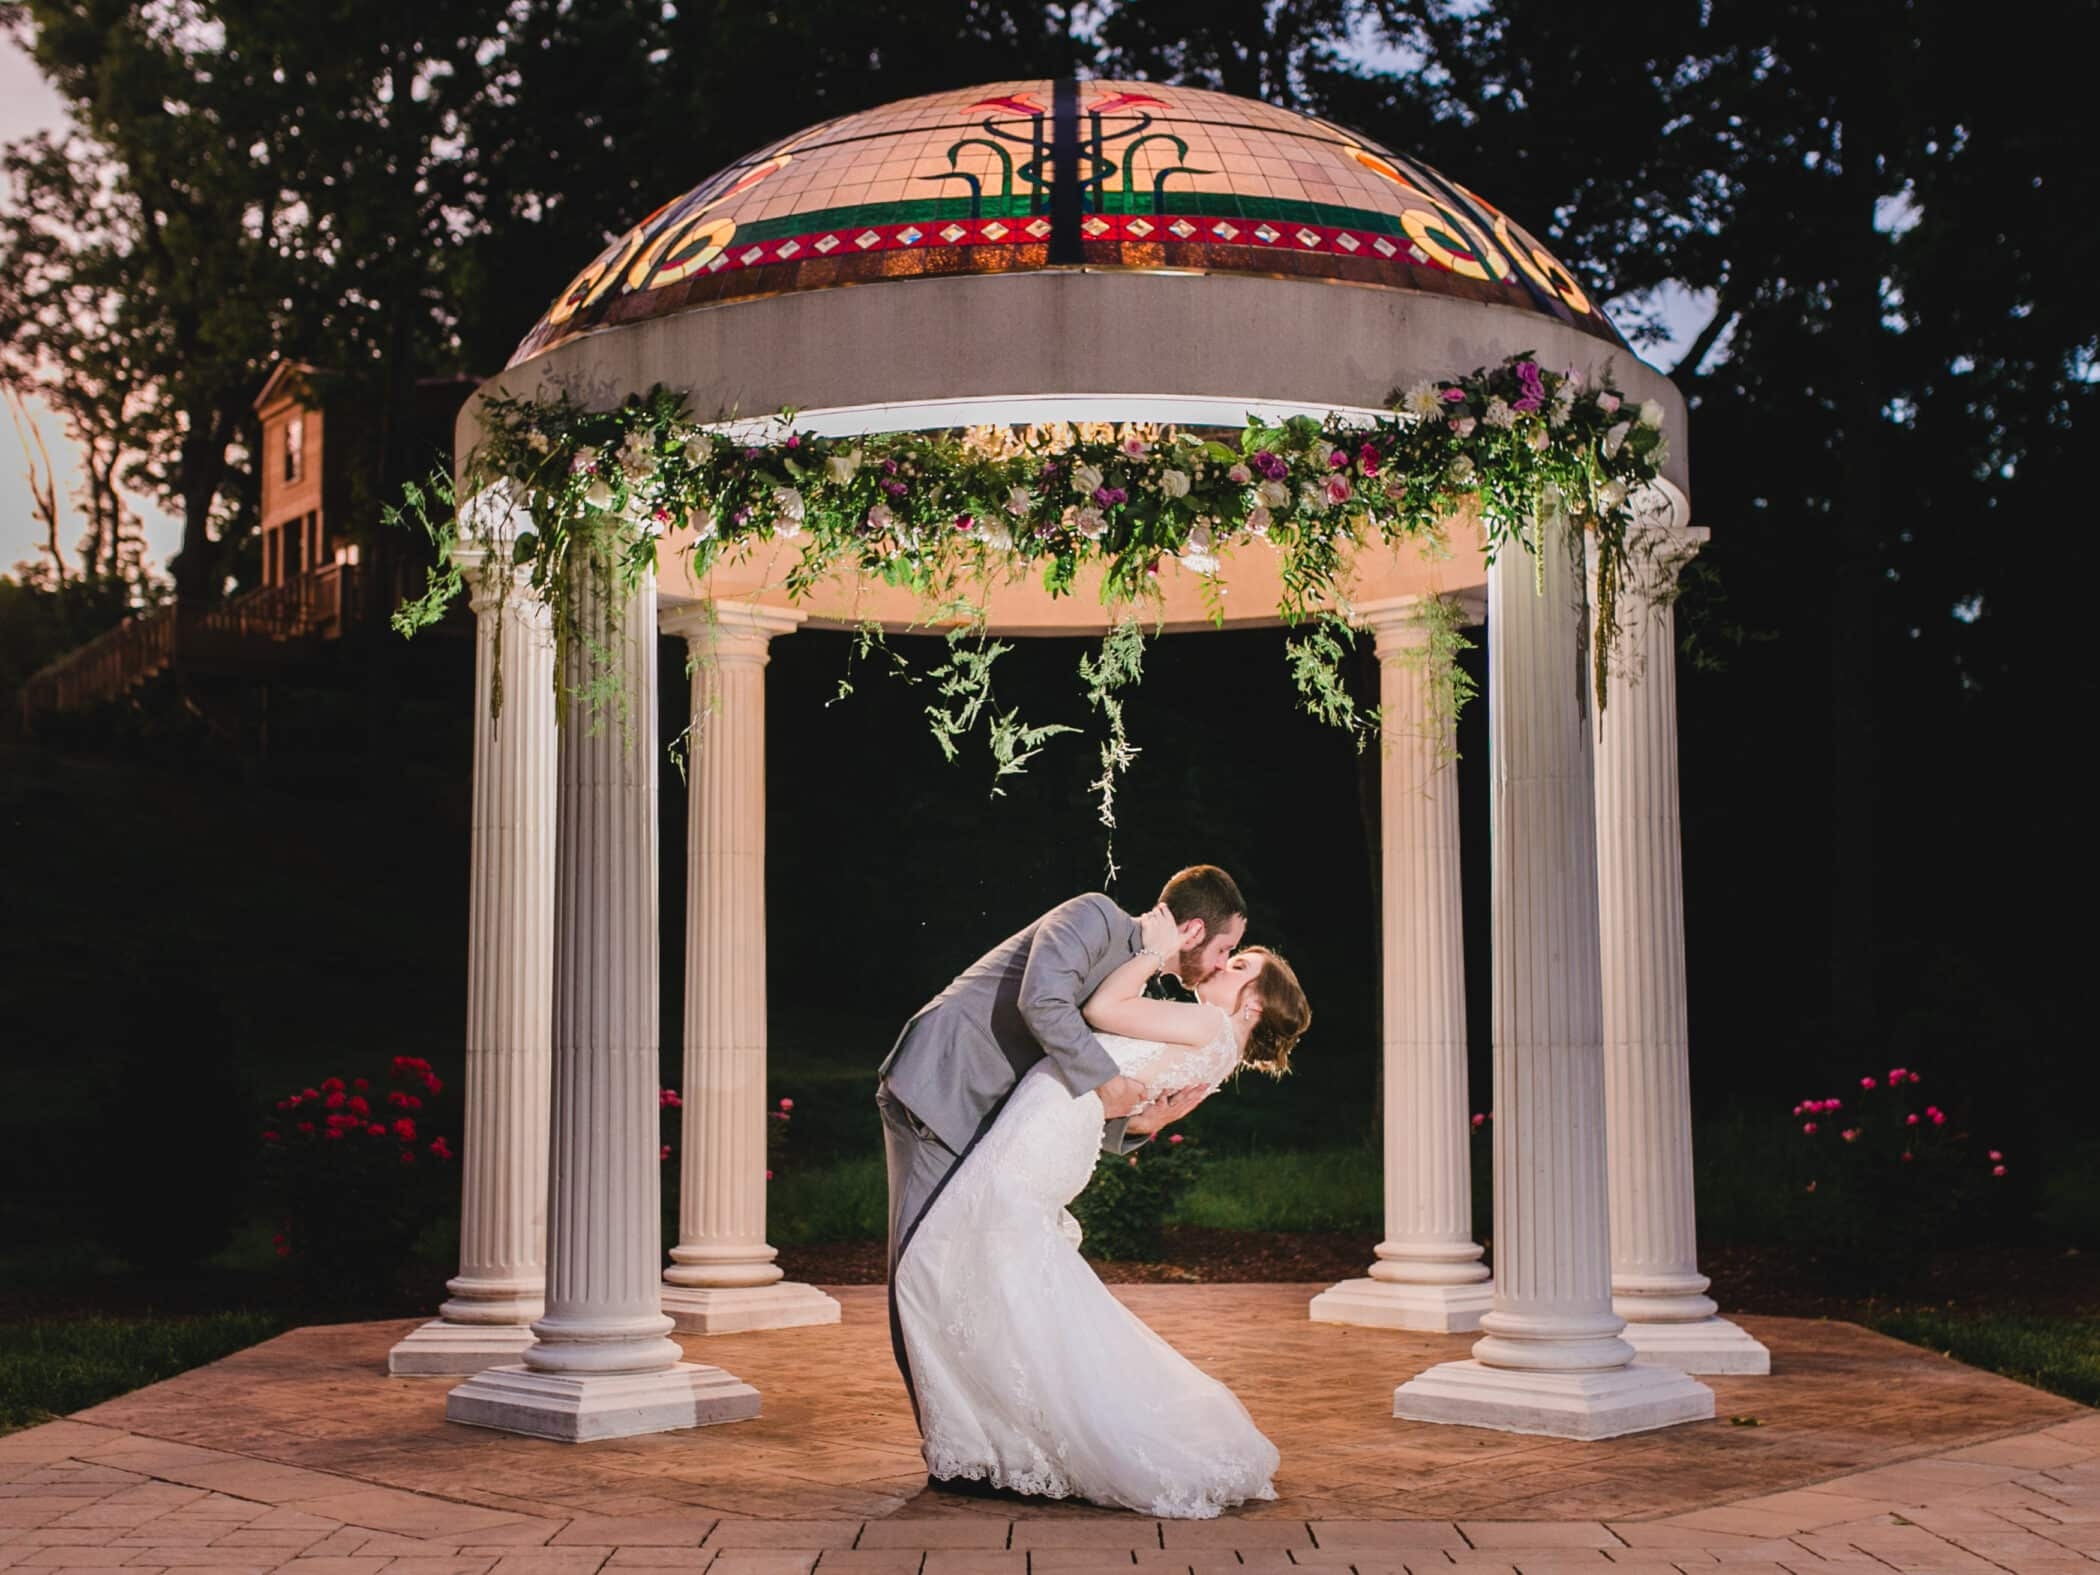 Selecting Your Virginia Wedding Venue | Entwined Events | Venue: Bella Rose Plantation in Lynchburg, VA | Photo Credit: April B Photography